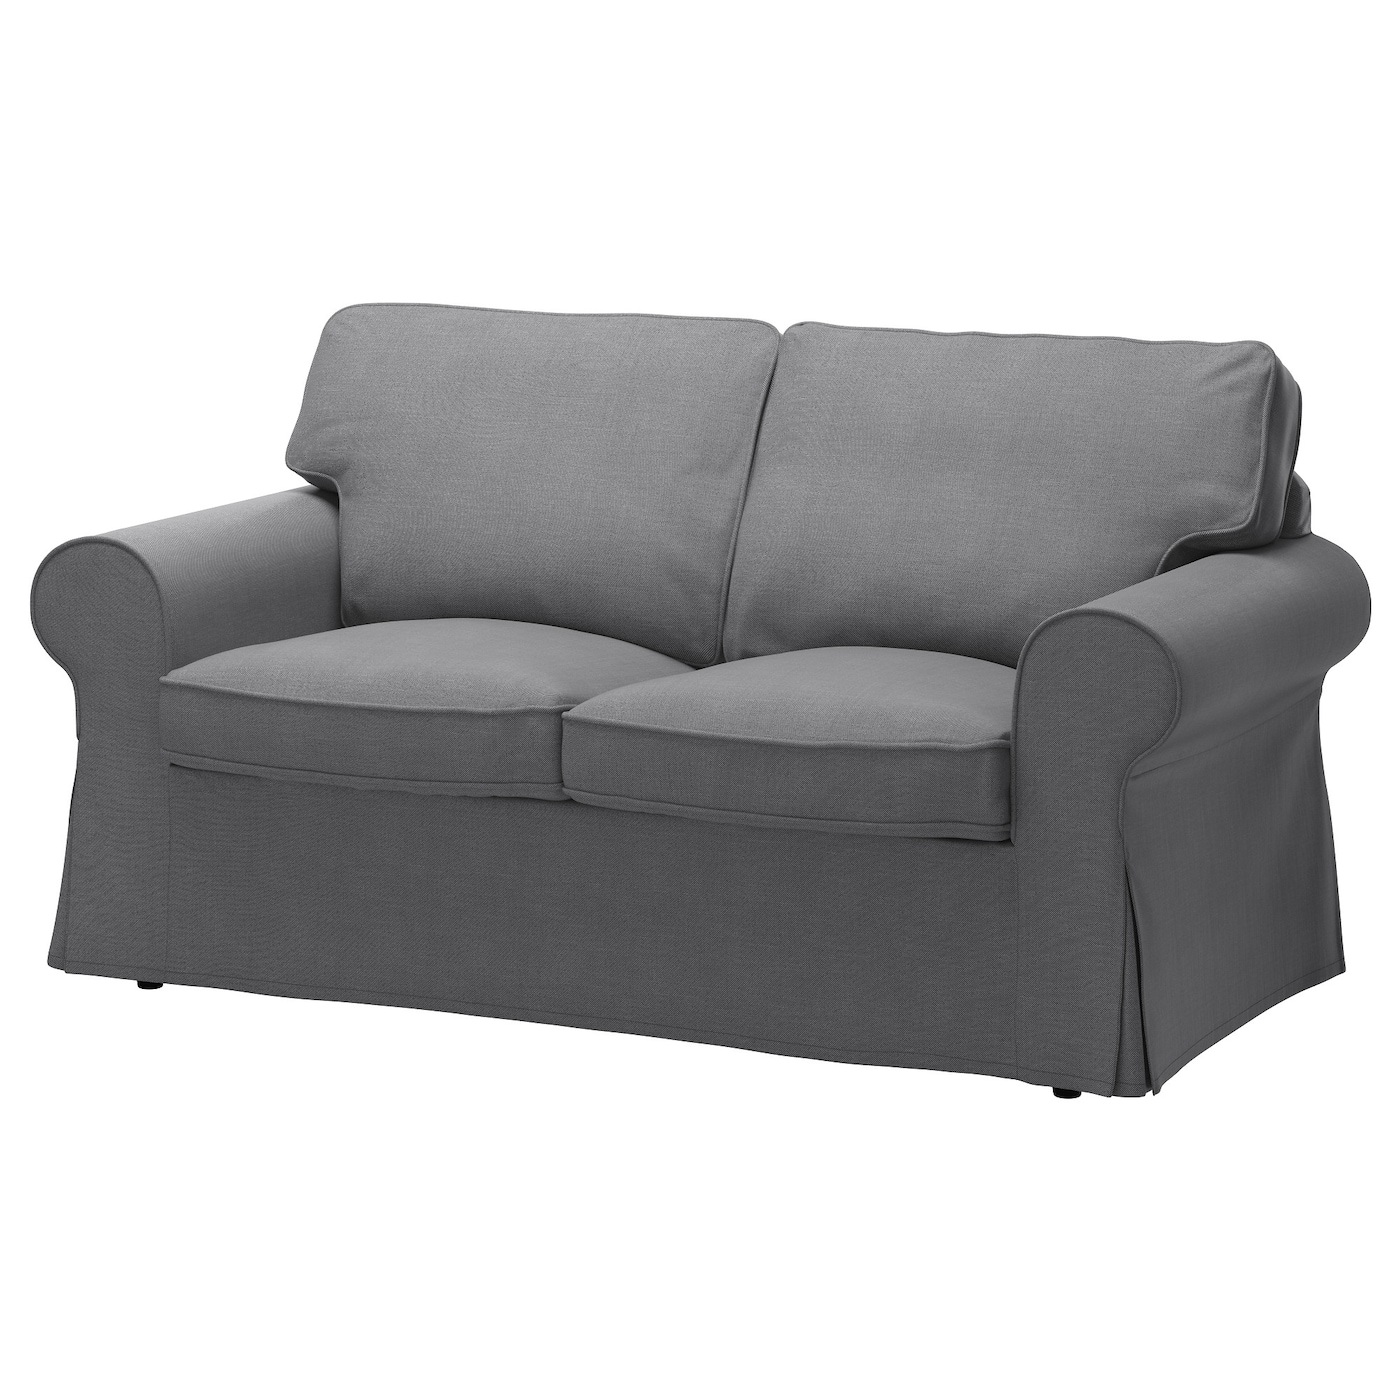 Lieblich IKEA EKTORP Two Seat Sofa 10 Year Guarantee. Read About The Terms In The